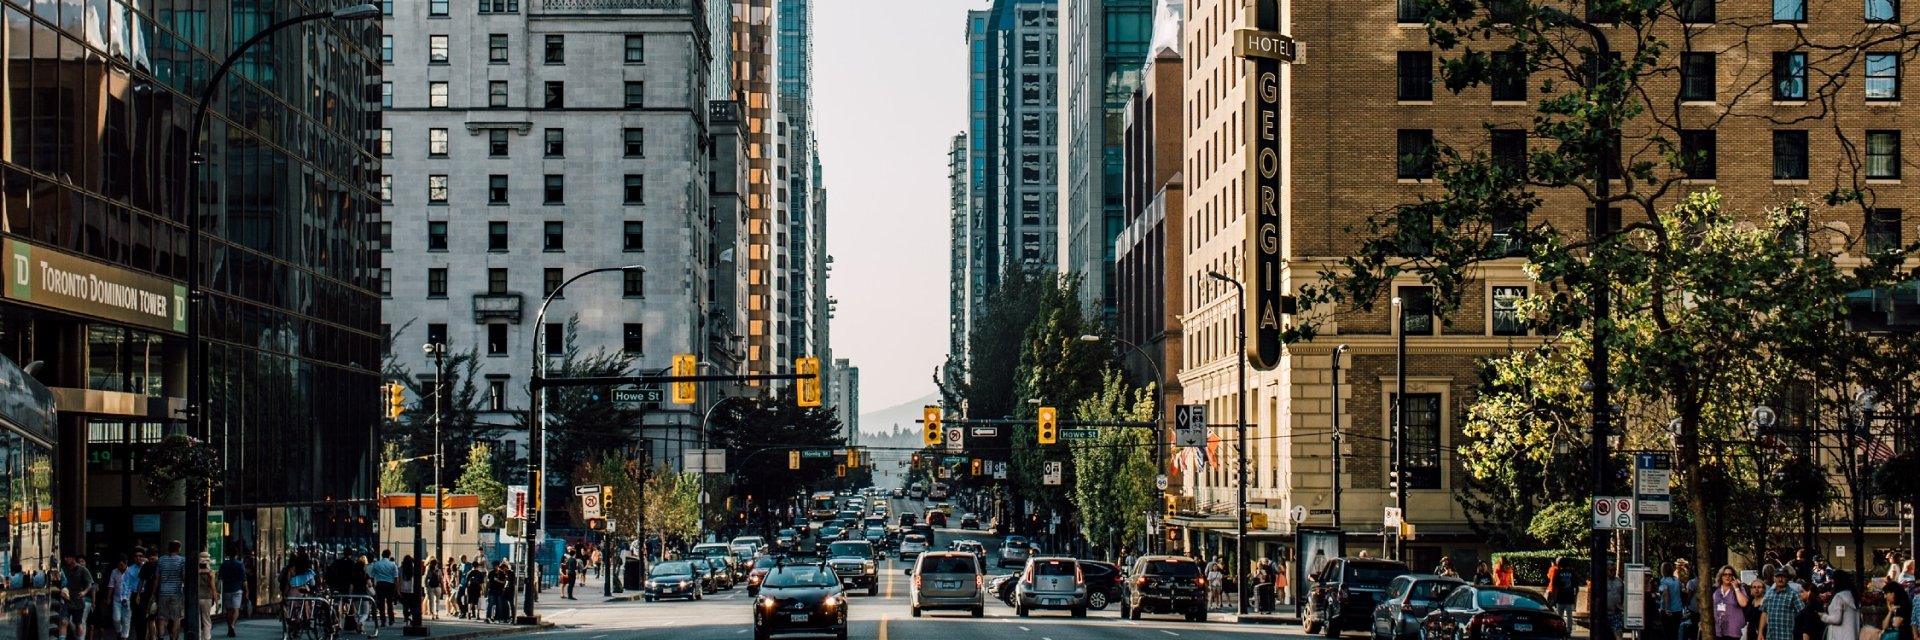 Georgia Street, Downtown Vancouver (can see the Rosewood Hotel Georgia, Fairmont Hotel Vancouver and Shangri-La Hotel)